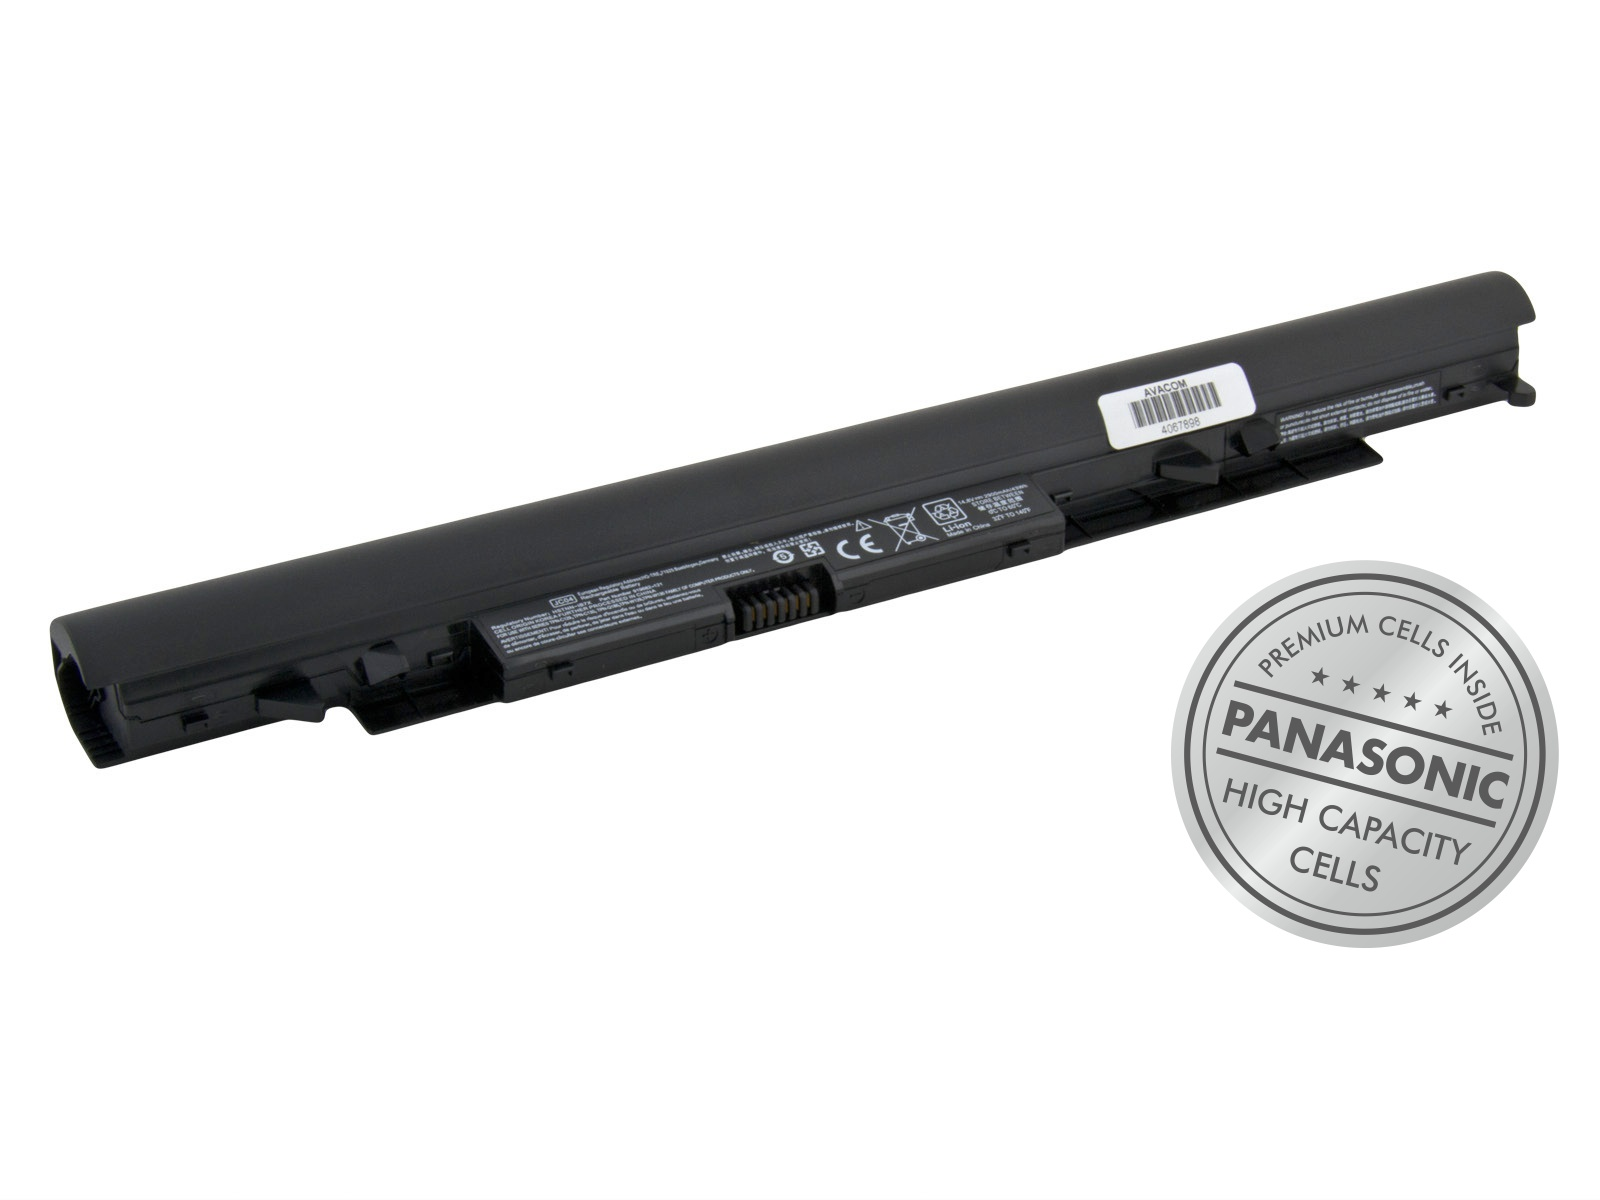 Baterie AVACOM pro HP 15-bs000, 15-bw000, 17-bs000